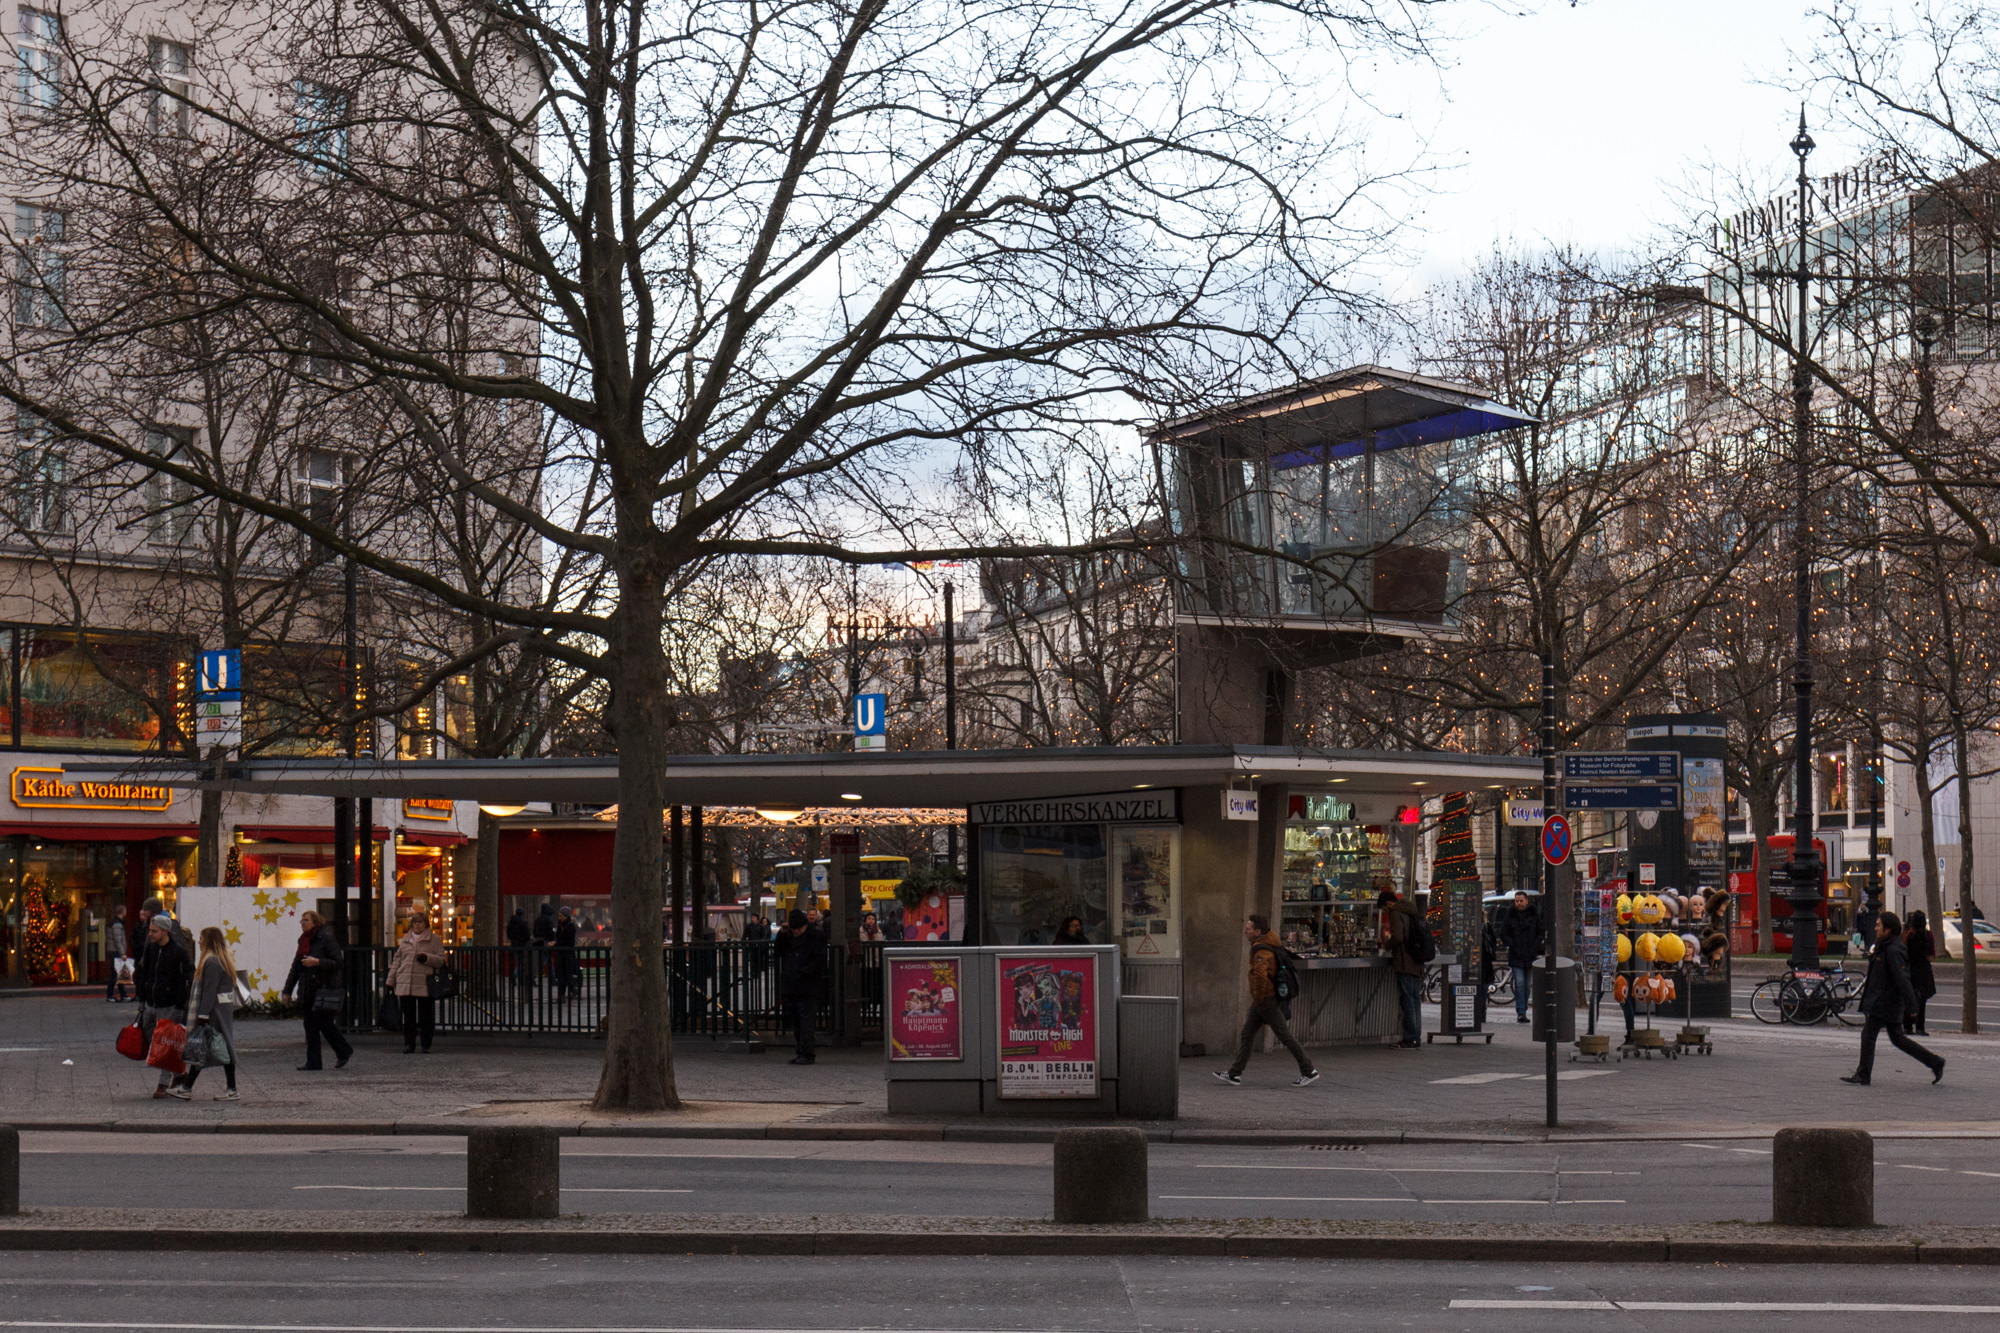 The Verkehrskanzel, a 1950s Traffic Control Pulpit on the corner of Kurfürstendamm and Joachimstaler Straße in Berlin, and the entrance to the Kurfürstendamm U-Bahn station